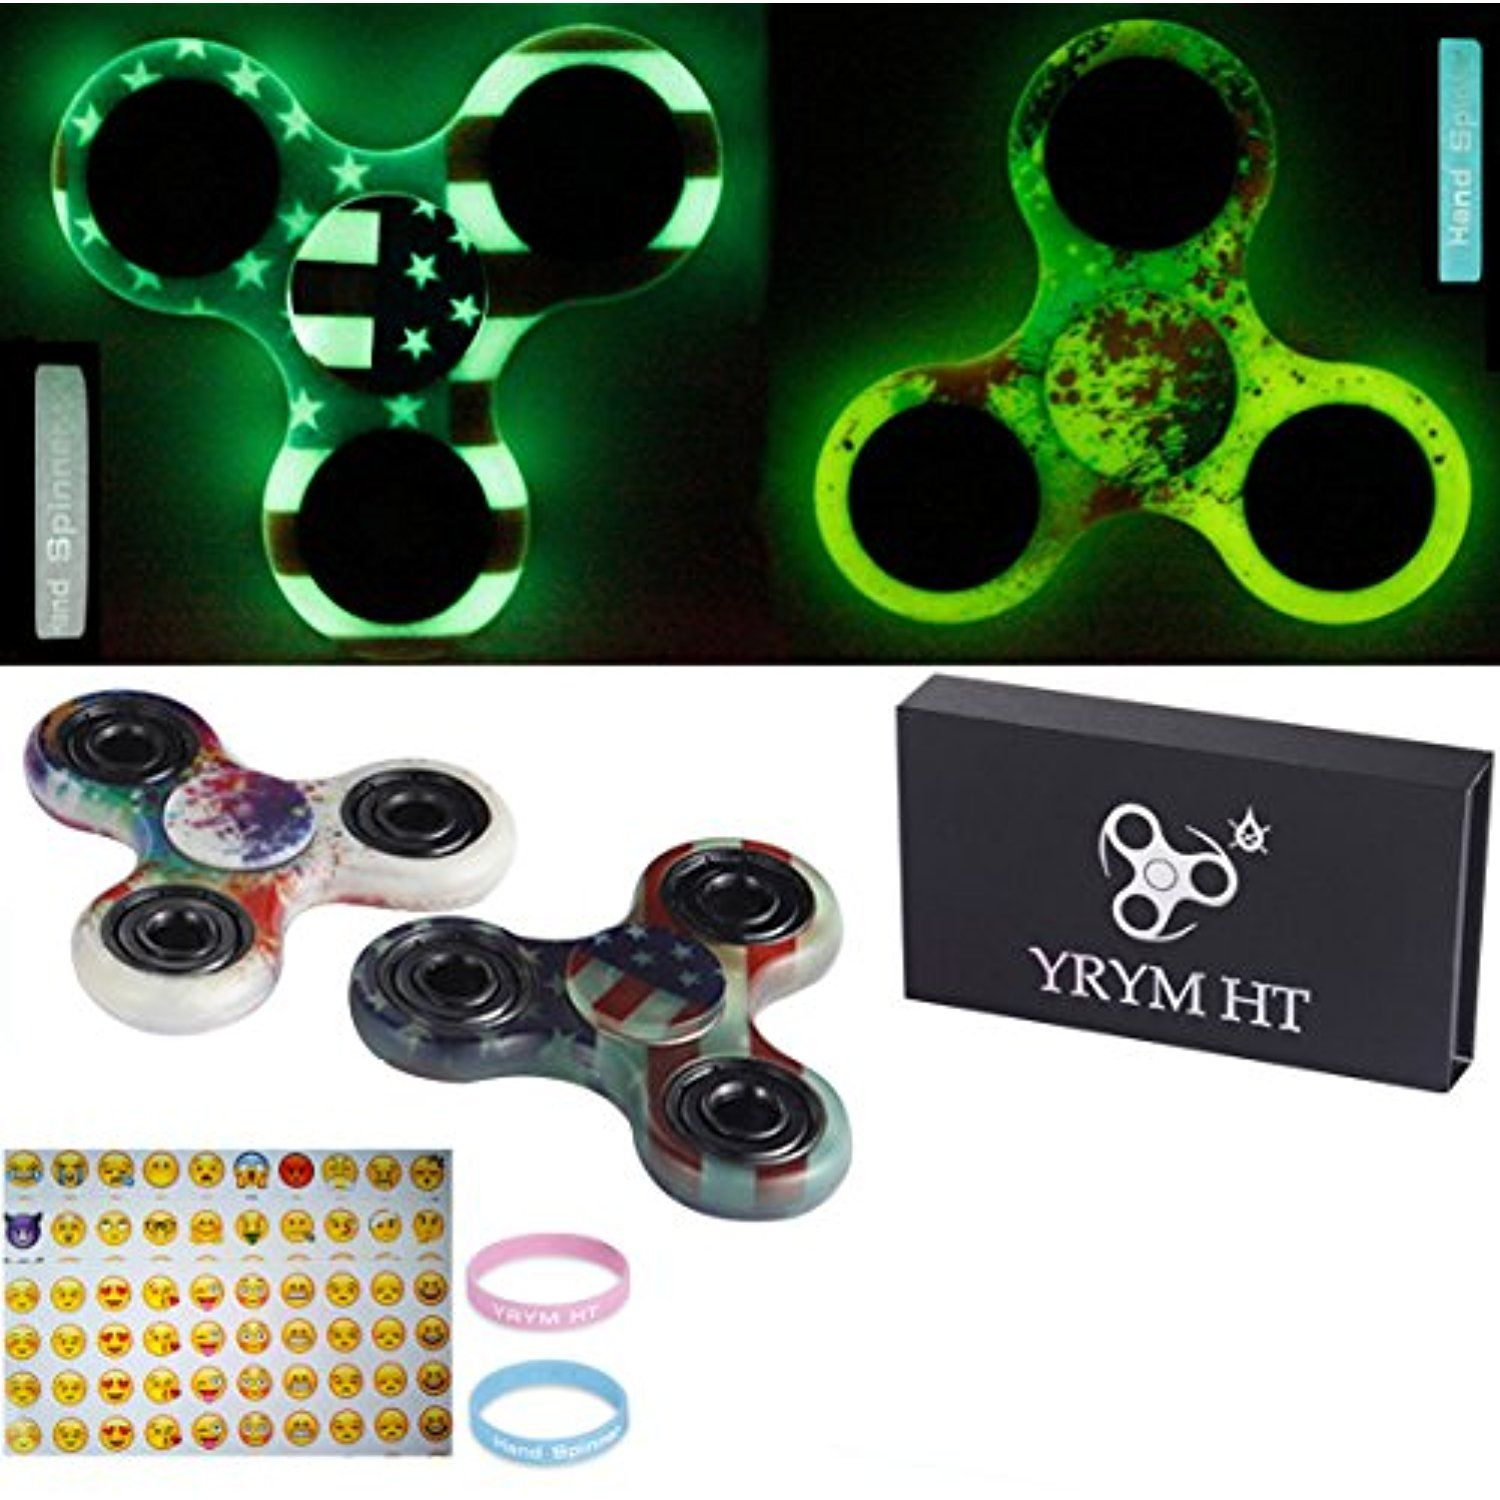 Fidget Spinner Glow In The Dark Hand Toys Premium Quality EDC Focus Toy For Finger Gadget Stress Reducer ADD ADHD Anxiety Autism